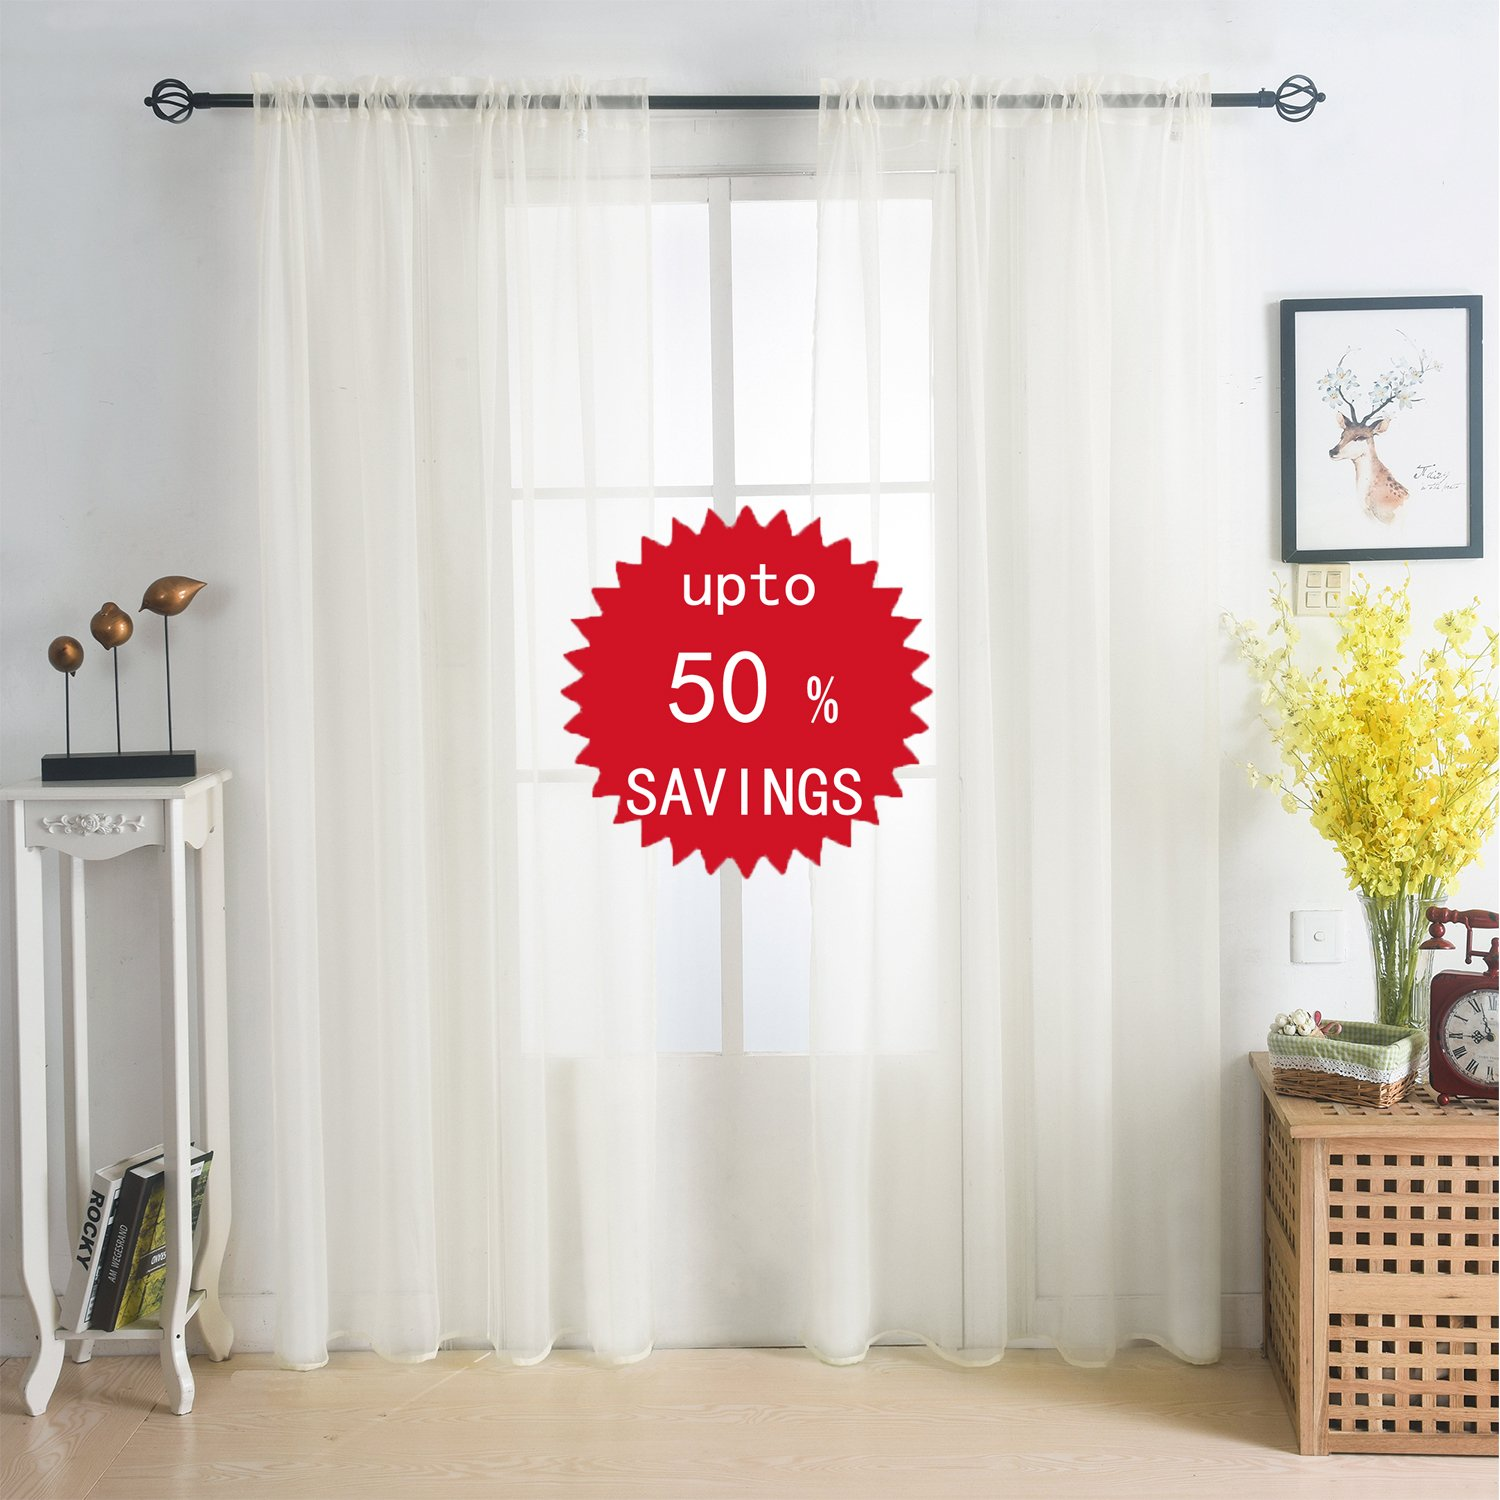 treatments curtain window ip better oak windows beab gardens homes walmart faux and com curtains blinds wood